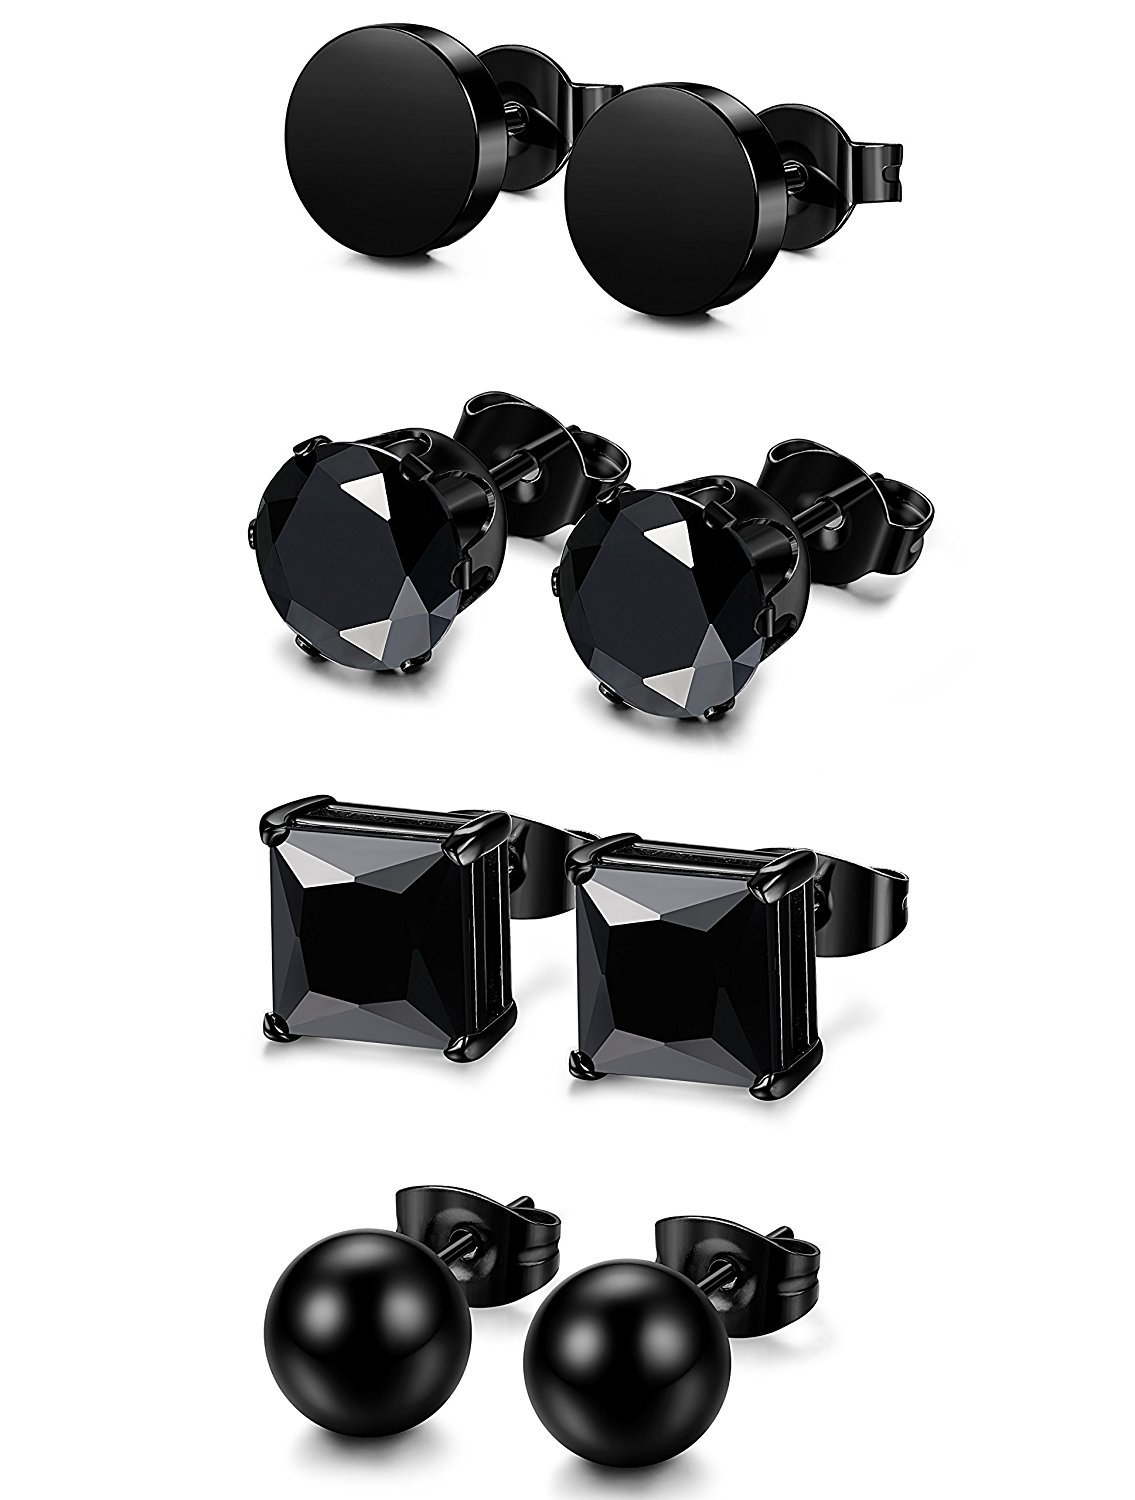 BESTEEL 4Pairs Stainless Steel Earrings Stud for Men Women Balls Earrings Round Cartilage CZ Black 4-8MM